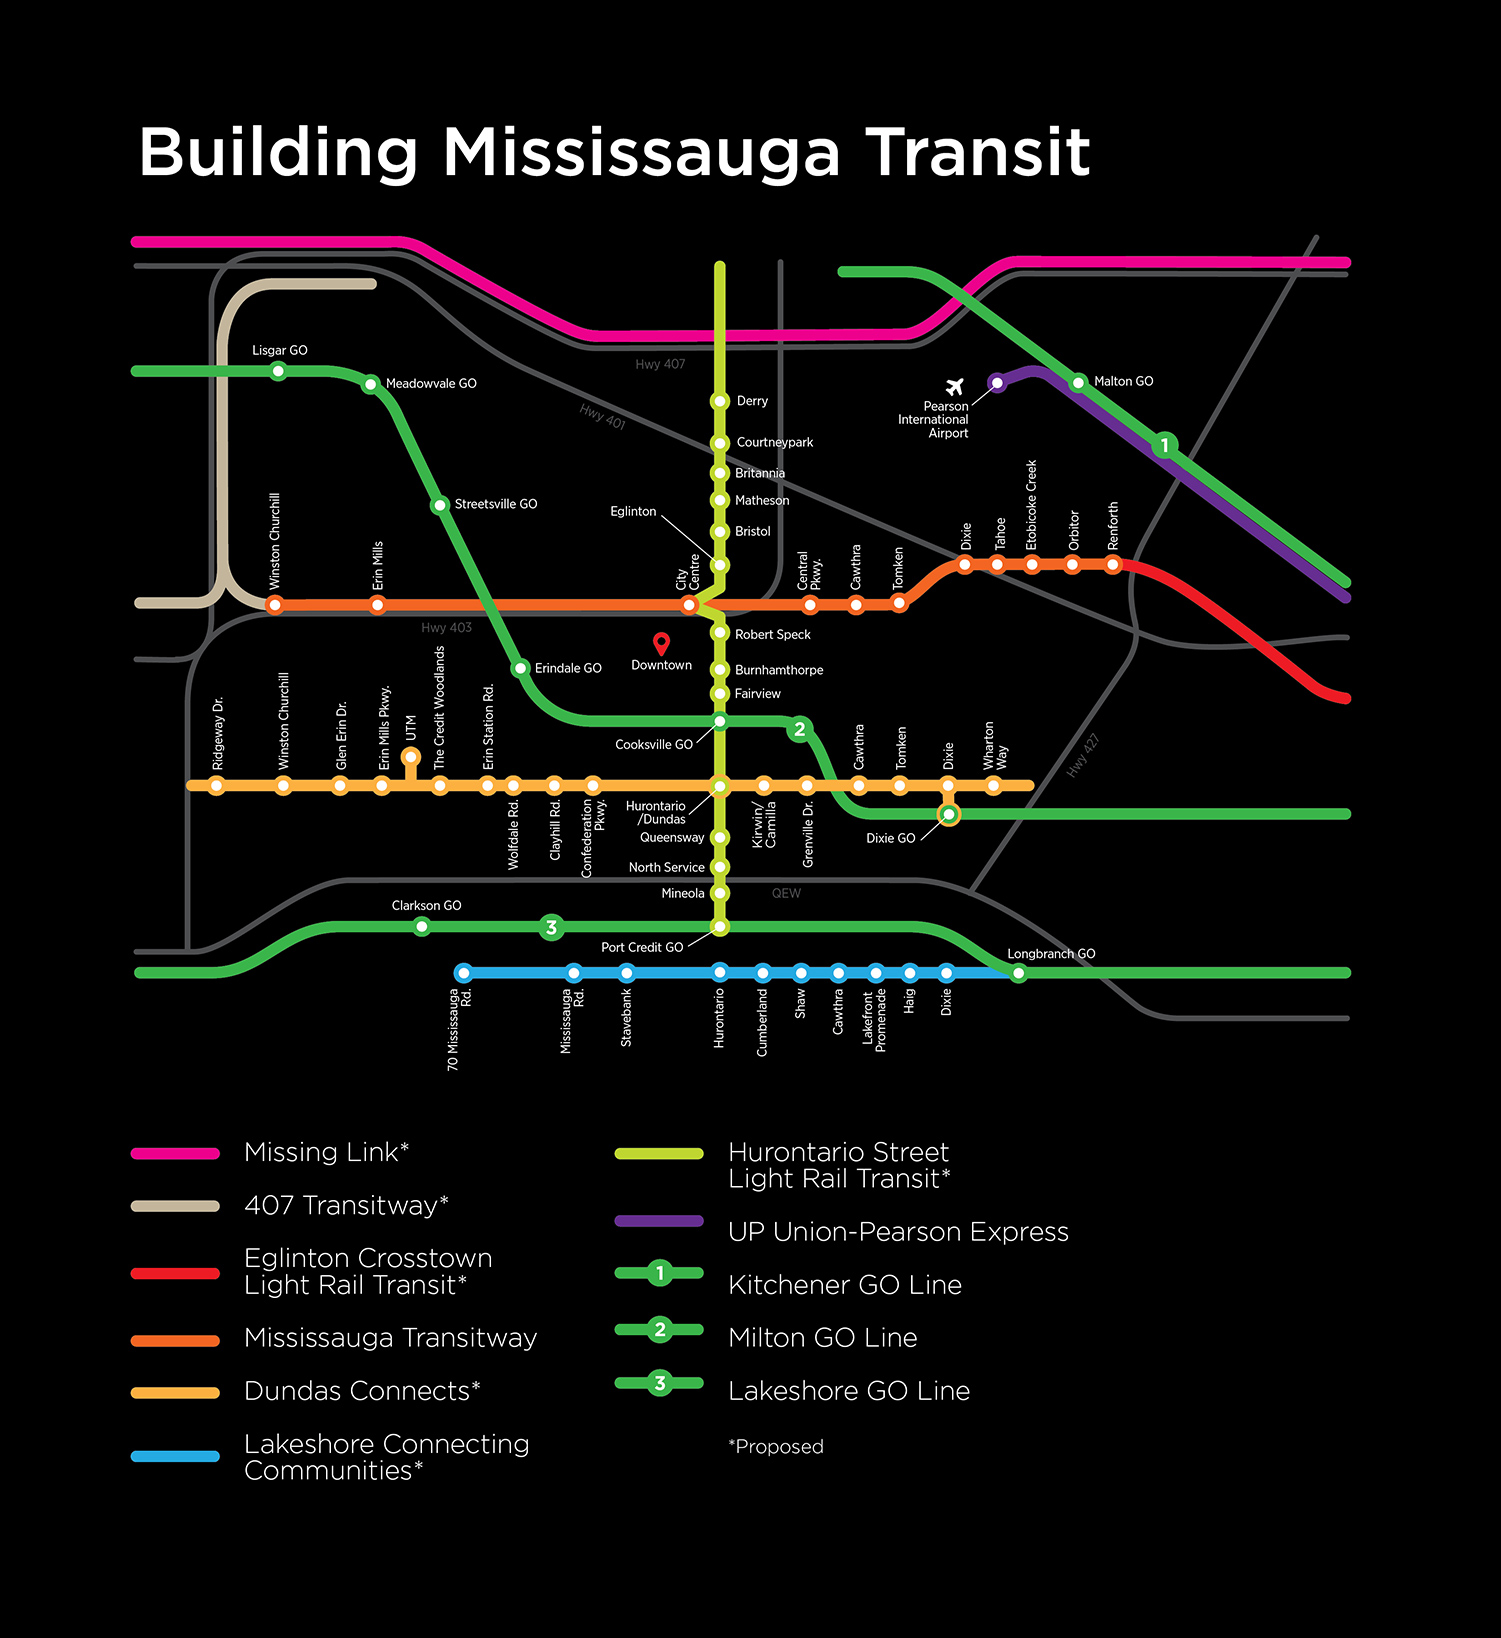 Map of current and future transit lines in Mississauga